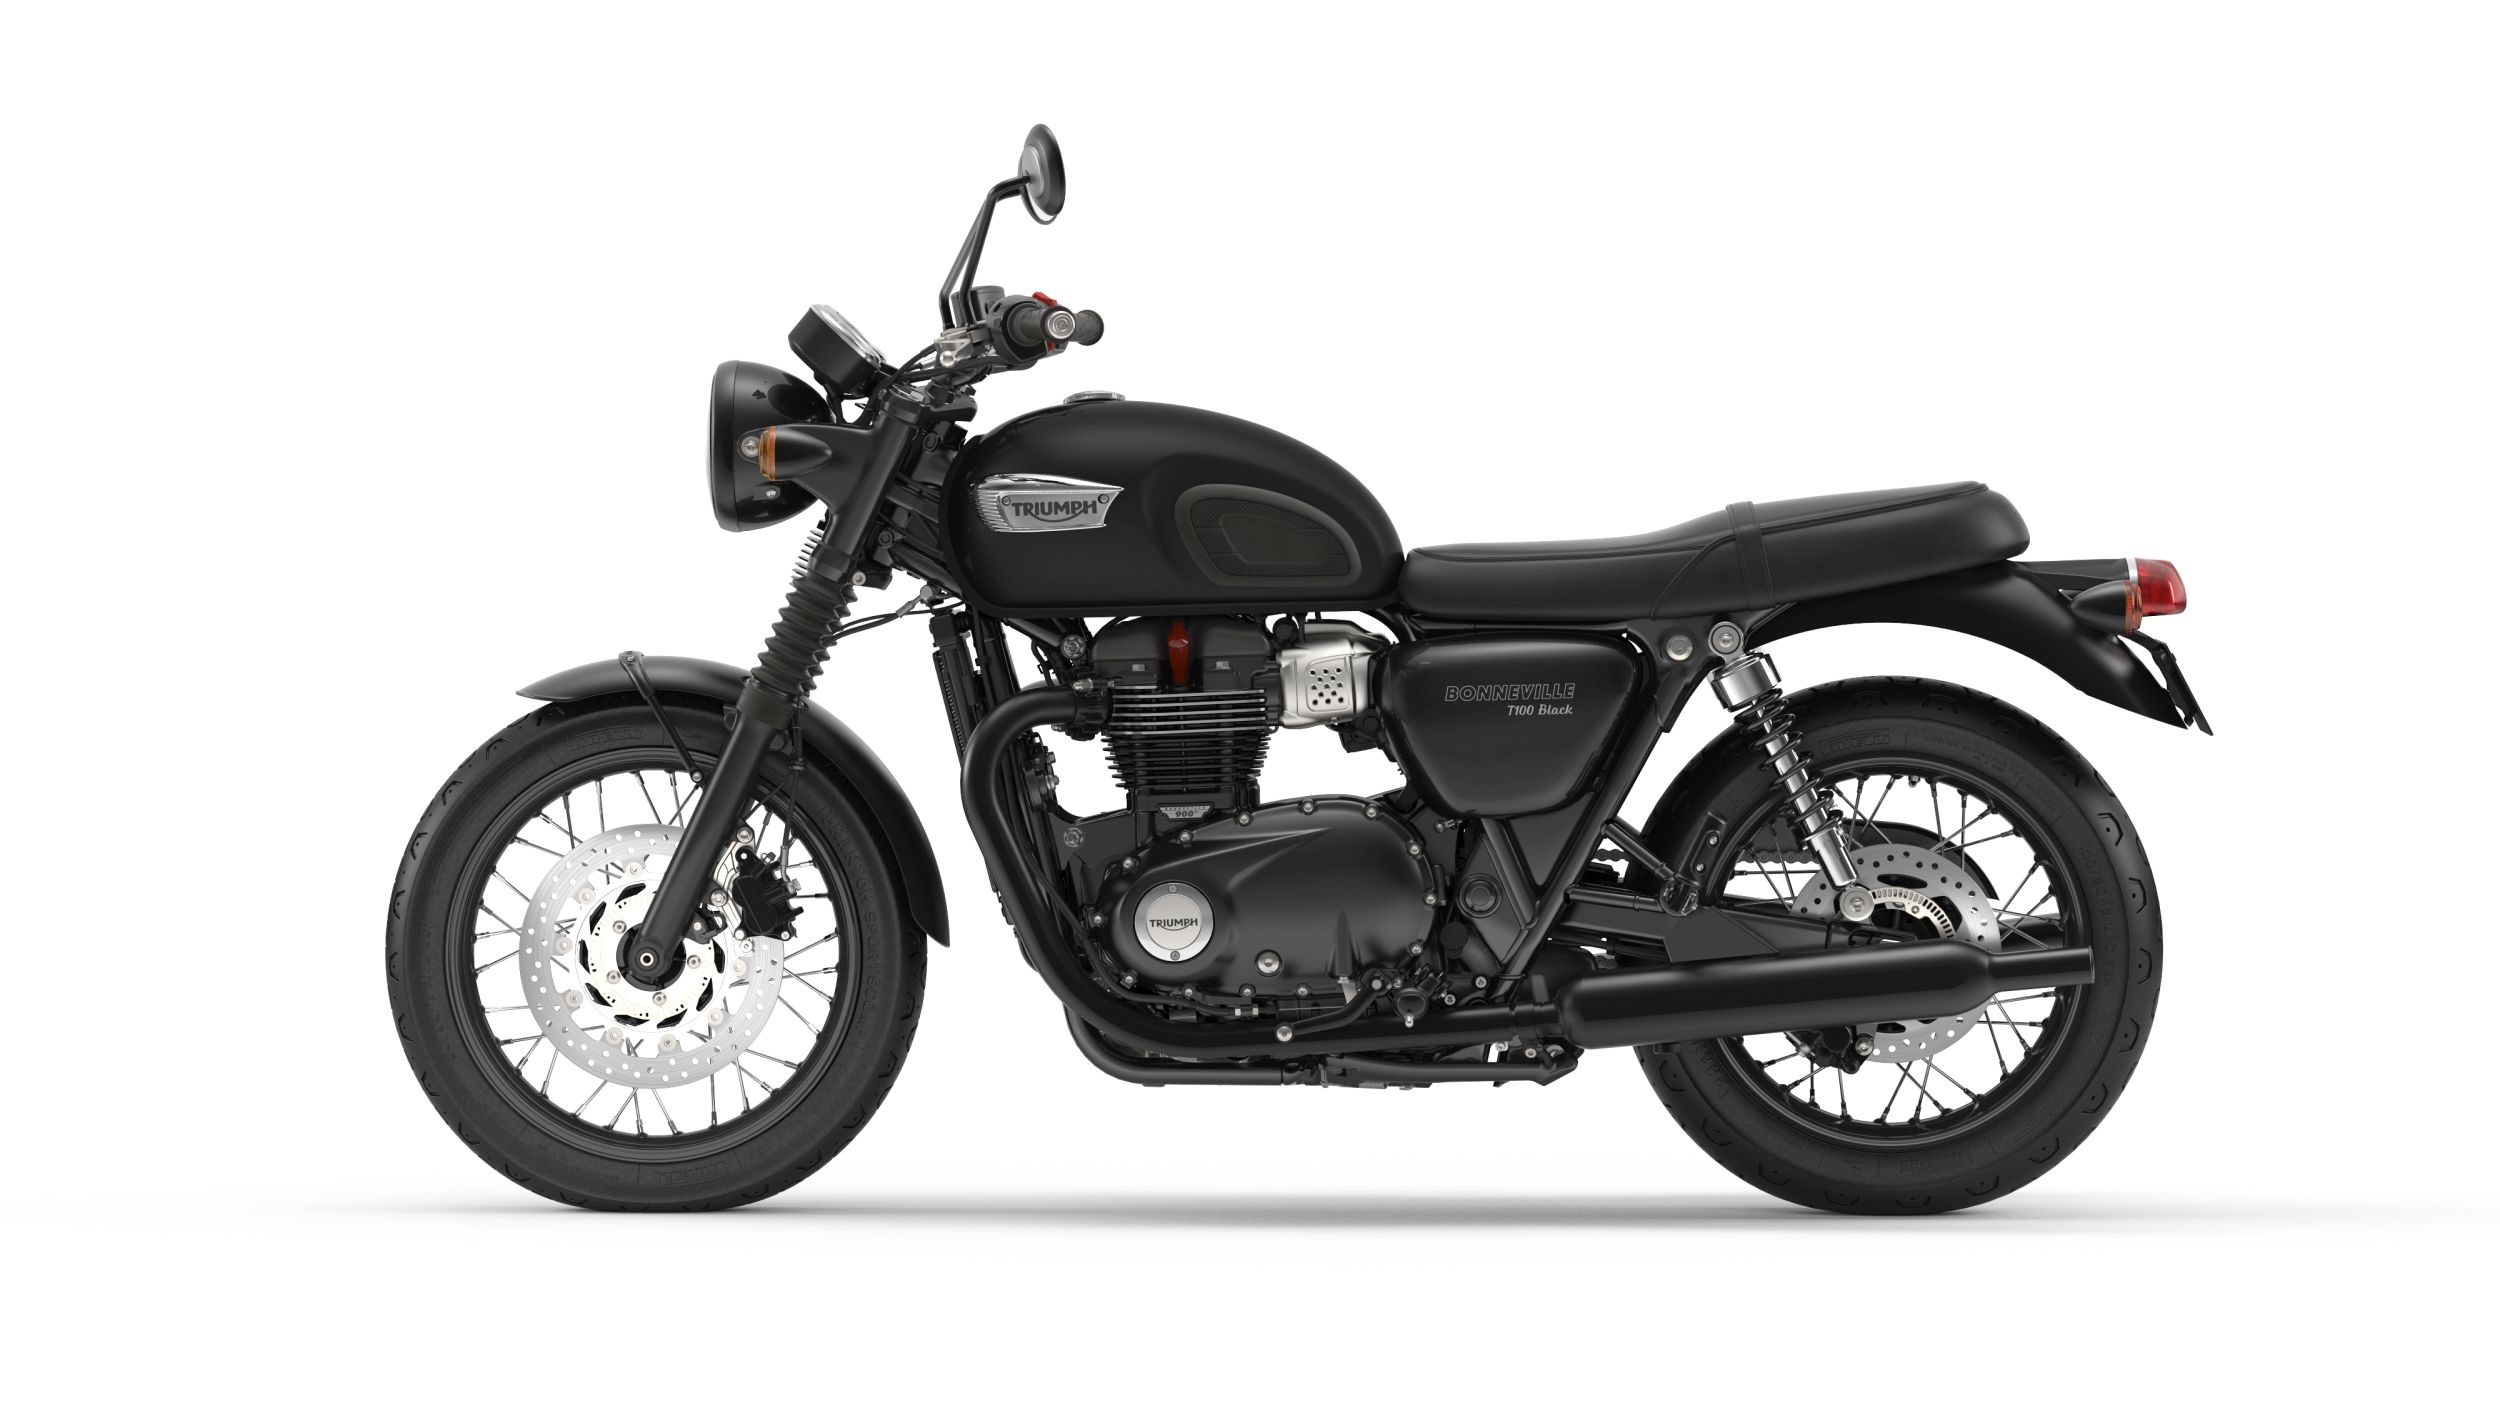 gebrauchte triumph bonneville t100 black motorr der kaufen. Black Bedroom Furniture Sets. Home Design Ideas